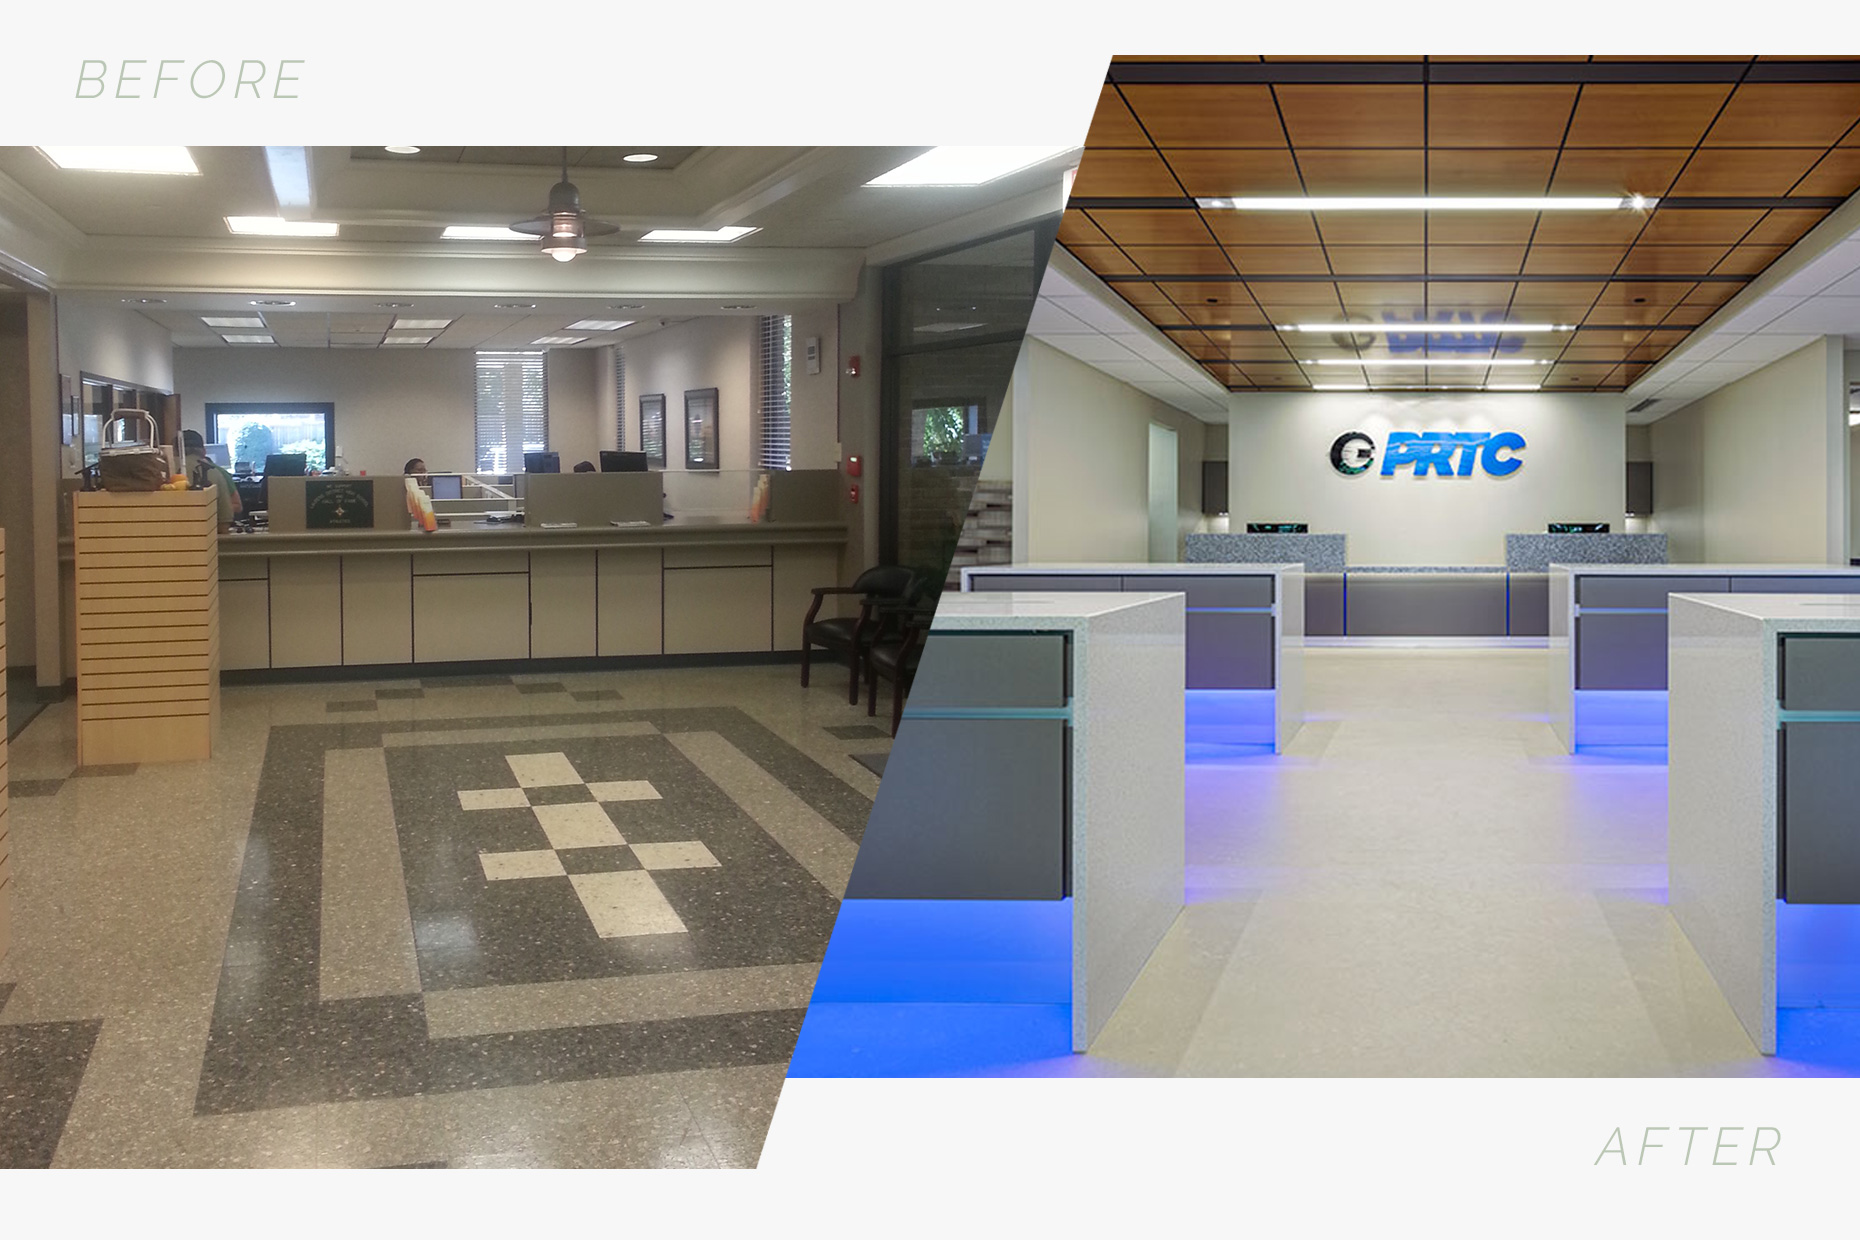 PRTC - entry before & after